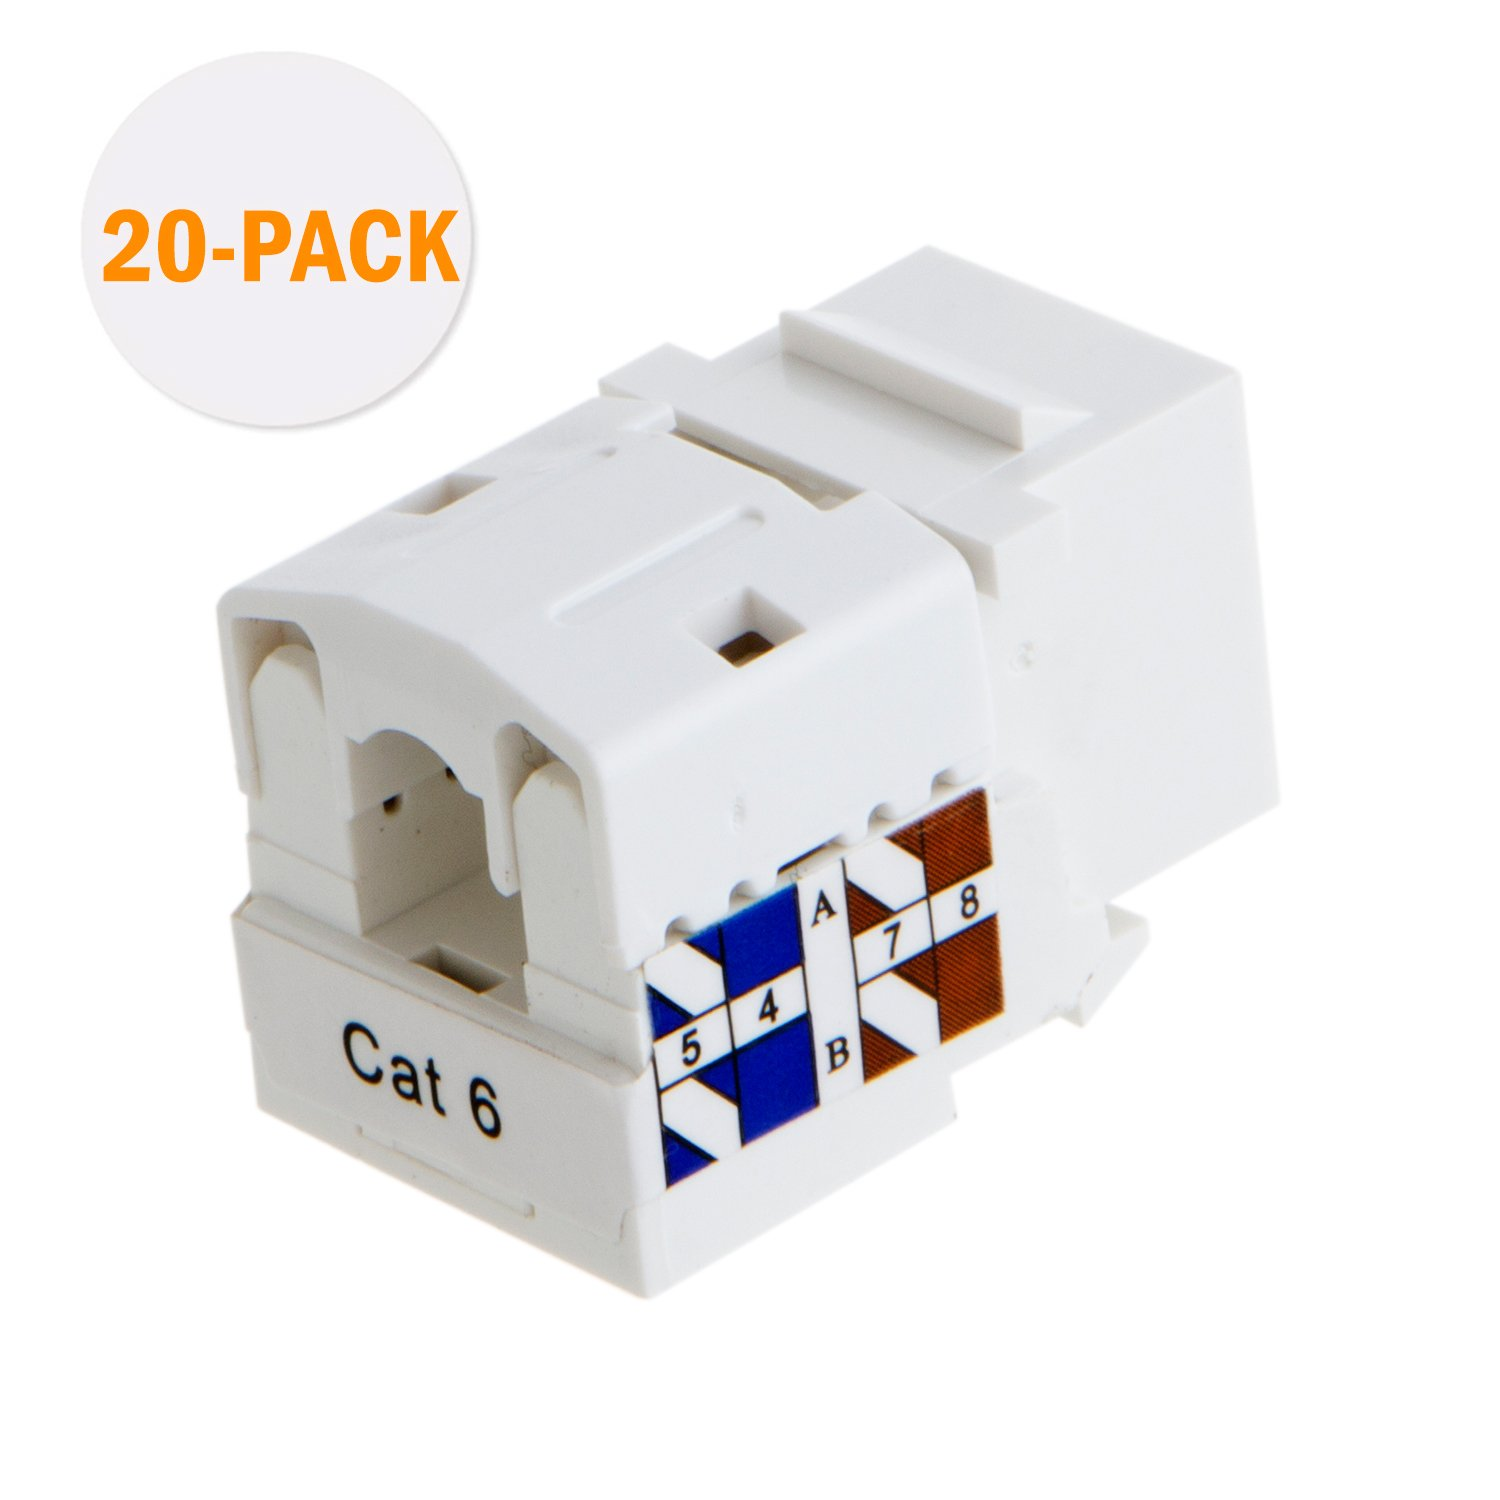 Cablecreation 20 Pack Cat6 Rj45 Keystone Module 110 Block Wiring Diagram Connector White Computers Accessories